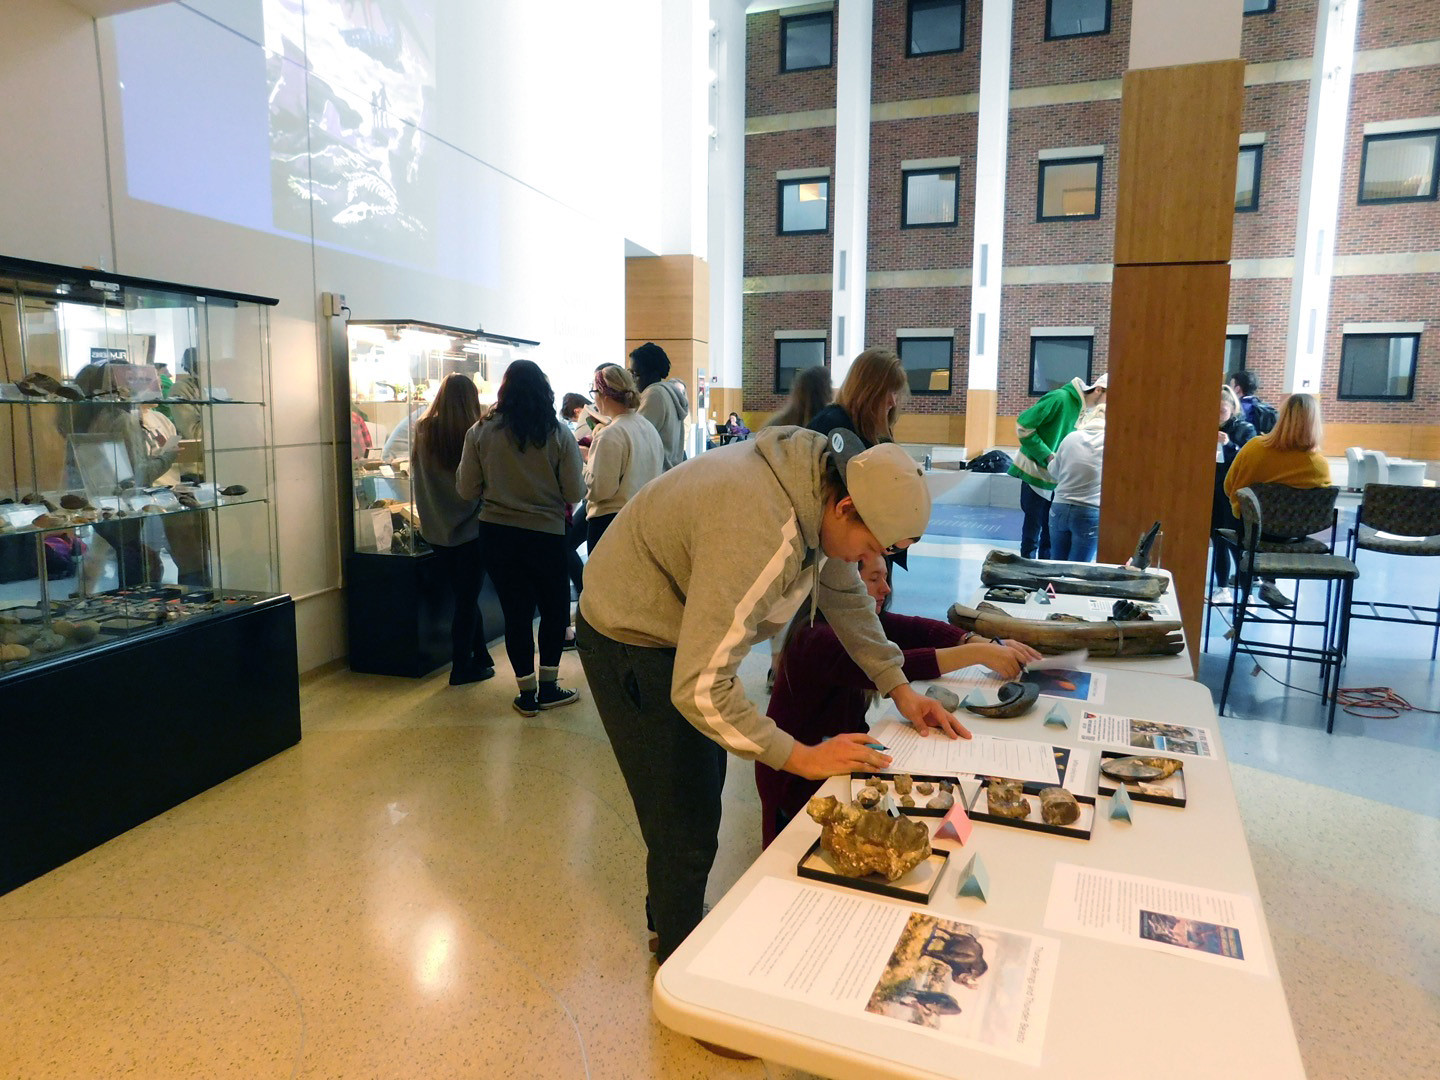 A celebration of National Fossil Day was held on Wednesday, Oct. 16 in the SLC Atrium, students could view and touch some dinosaur fossils and participate in a mock dinosaur dig during the event.